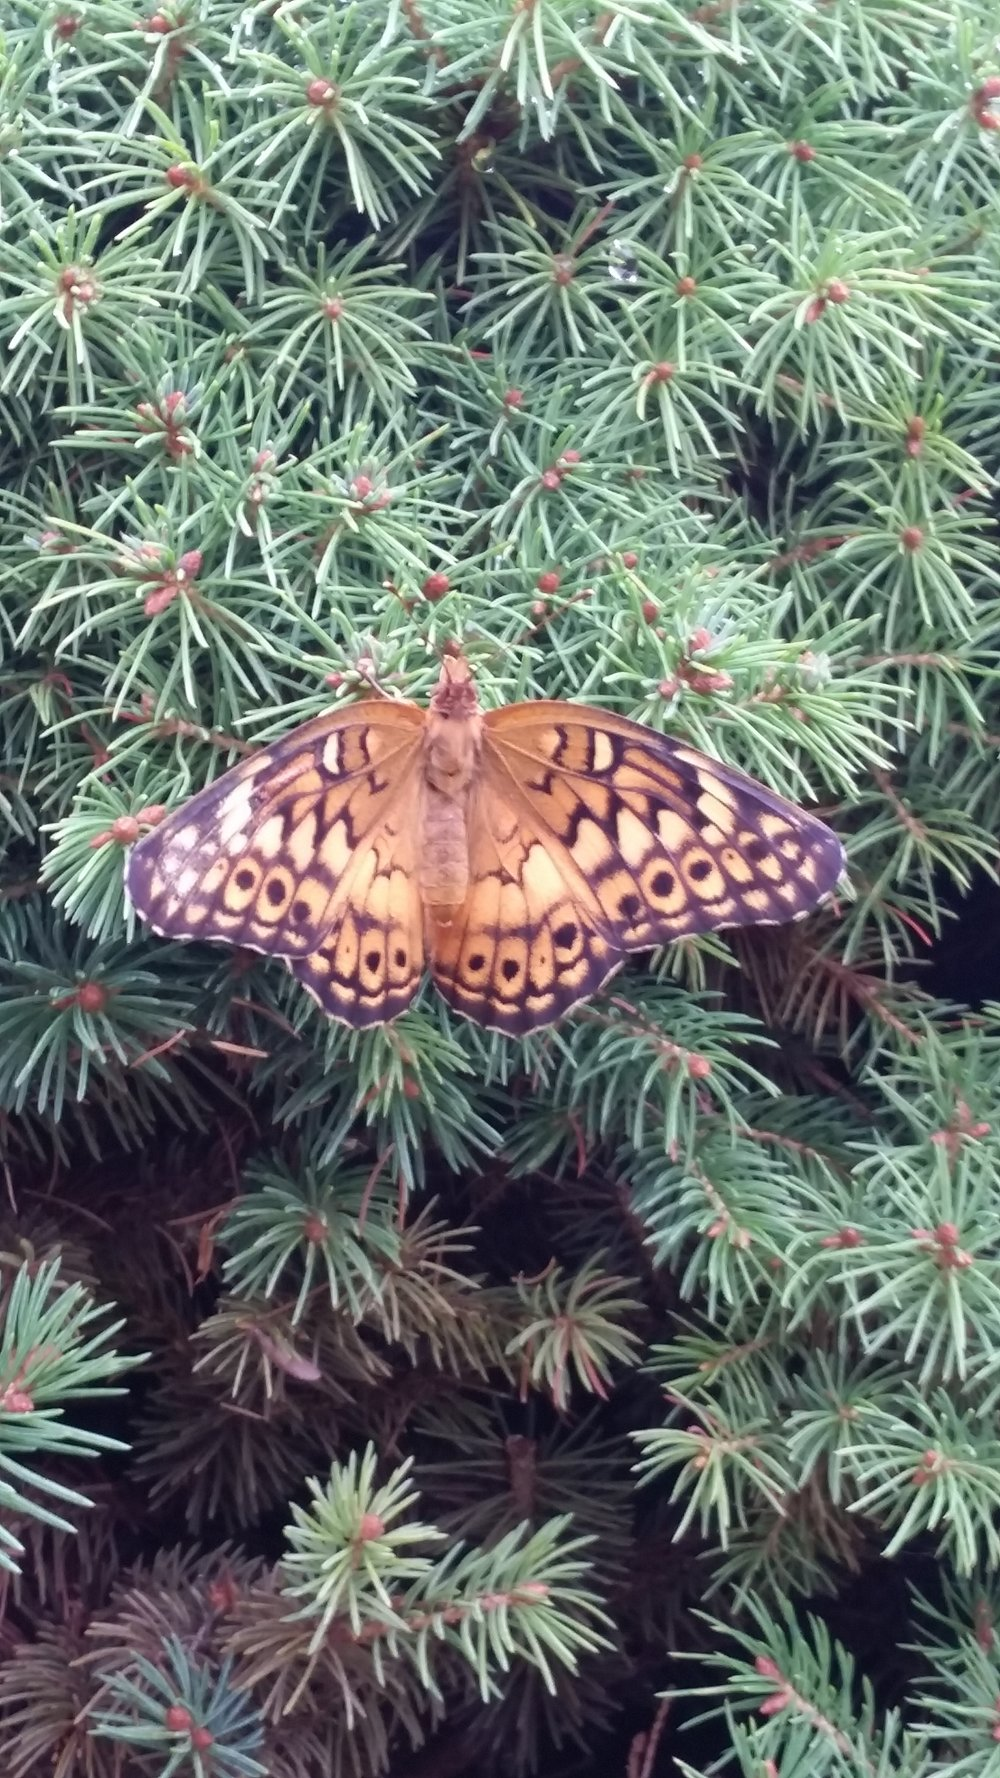 The fritillary stayed on our Alberta spruce for a bit and then flew off!